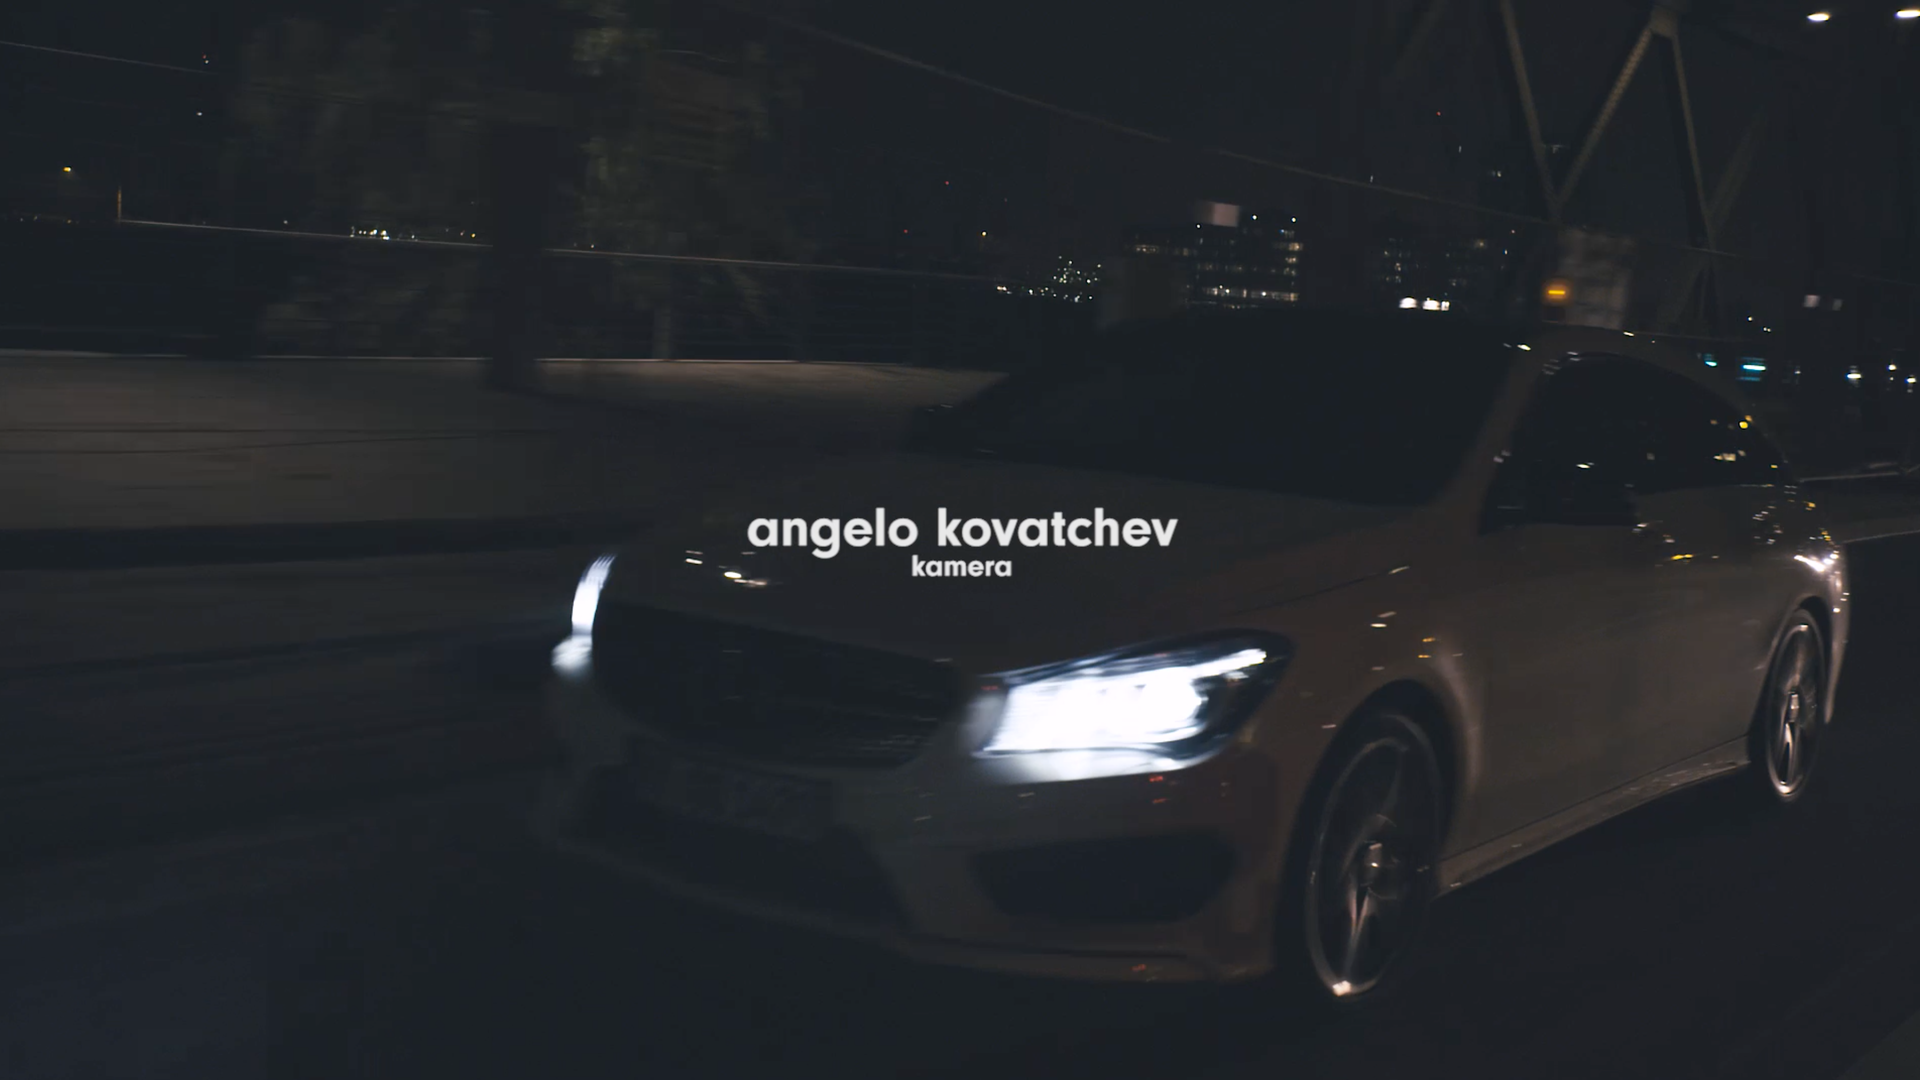 Showreel - Angelo Kovatchev - Kamera